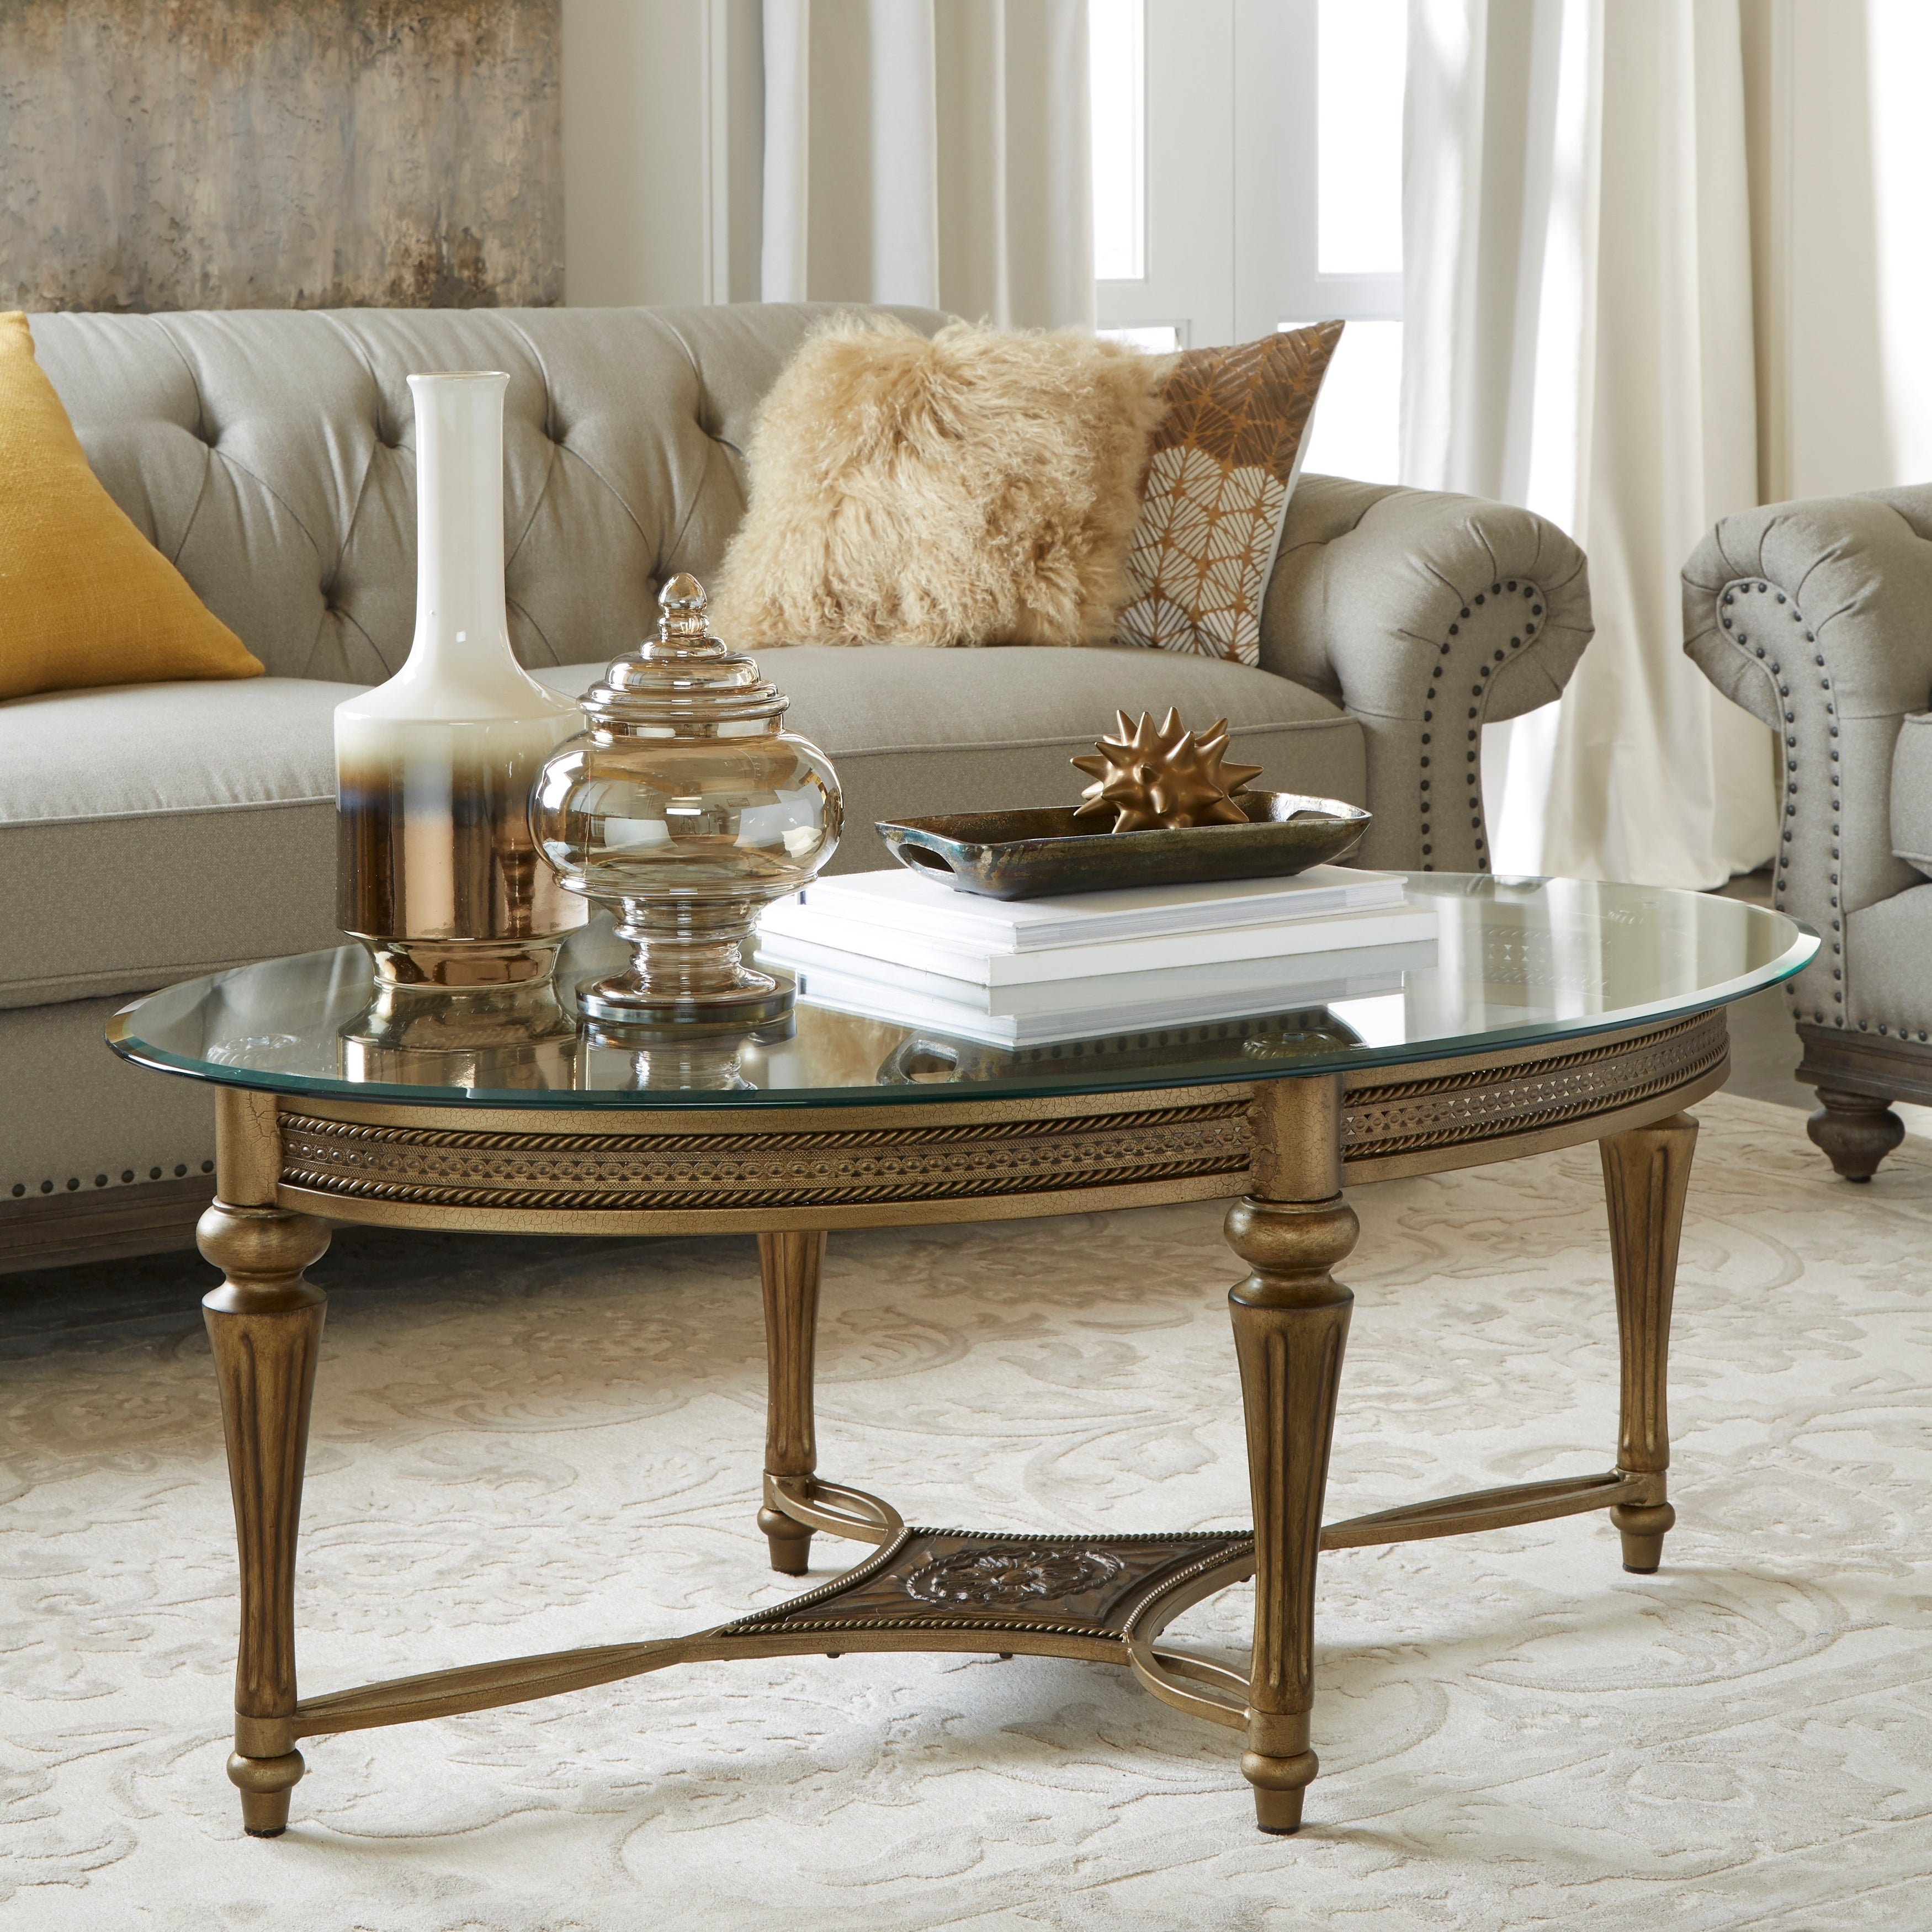 Magnussen Home Furnishings Galloway Oval Cocktail Table w...